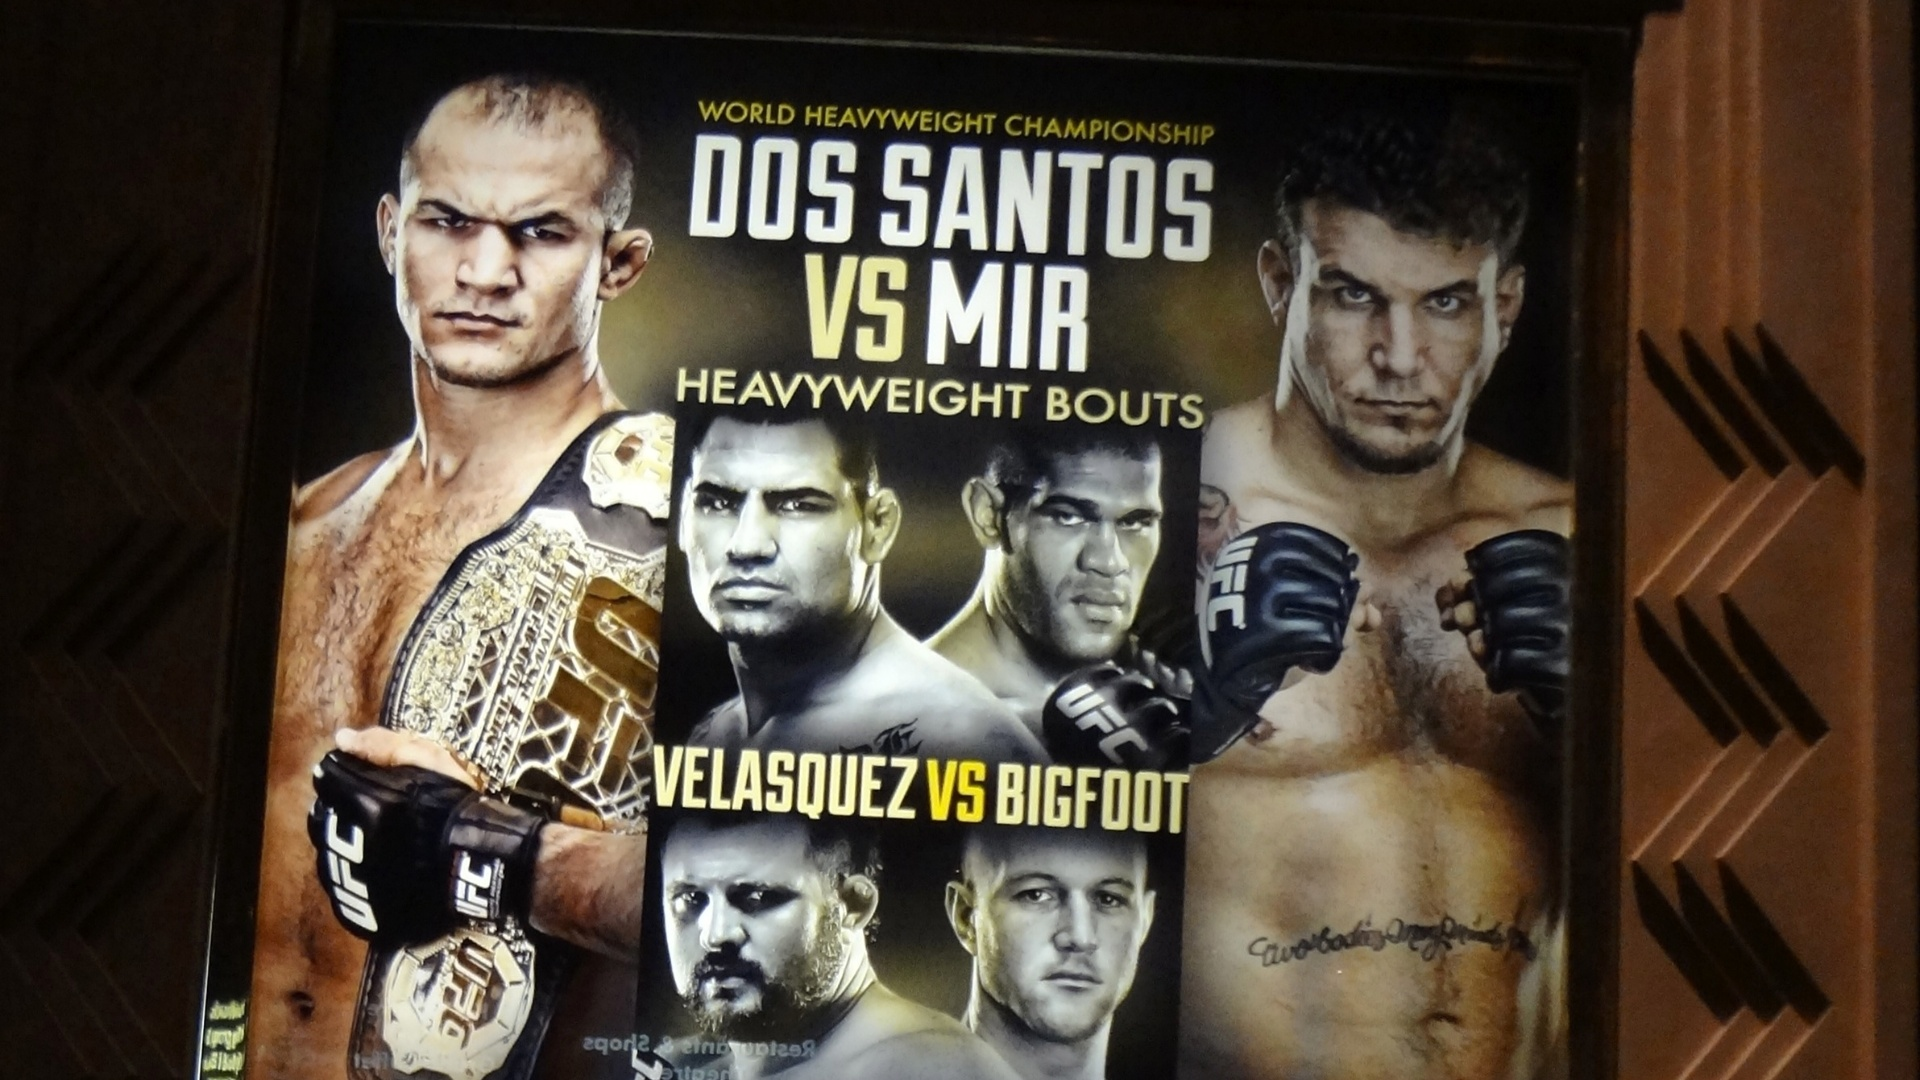 Cartazes do UFC 146 adornam as paredes do MGM Grand Garden, local do evento